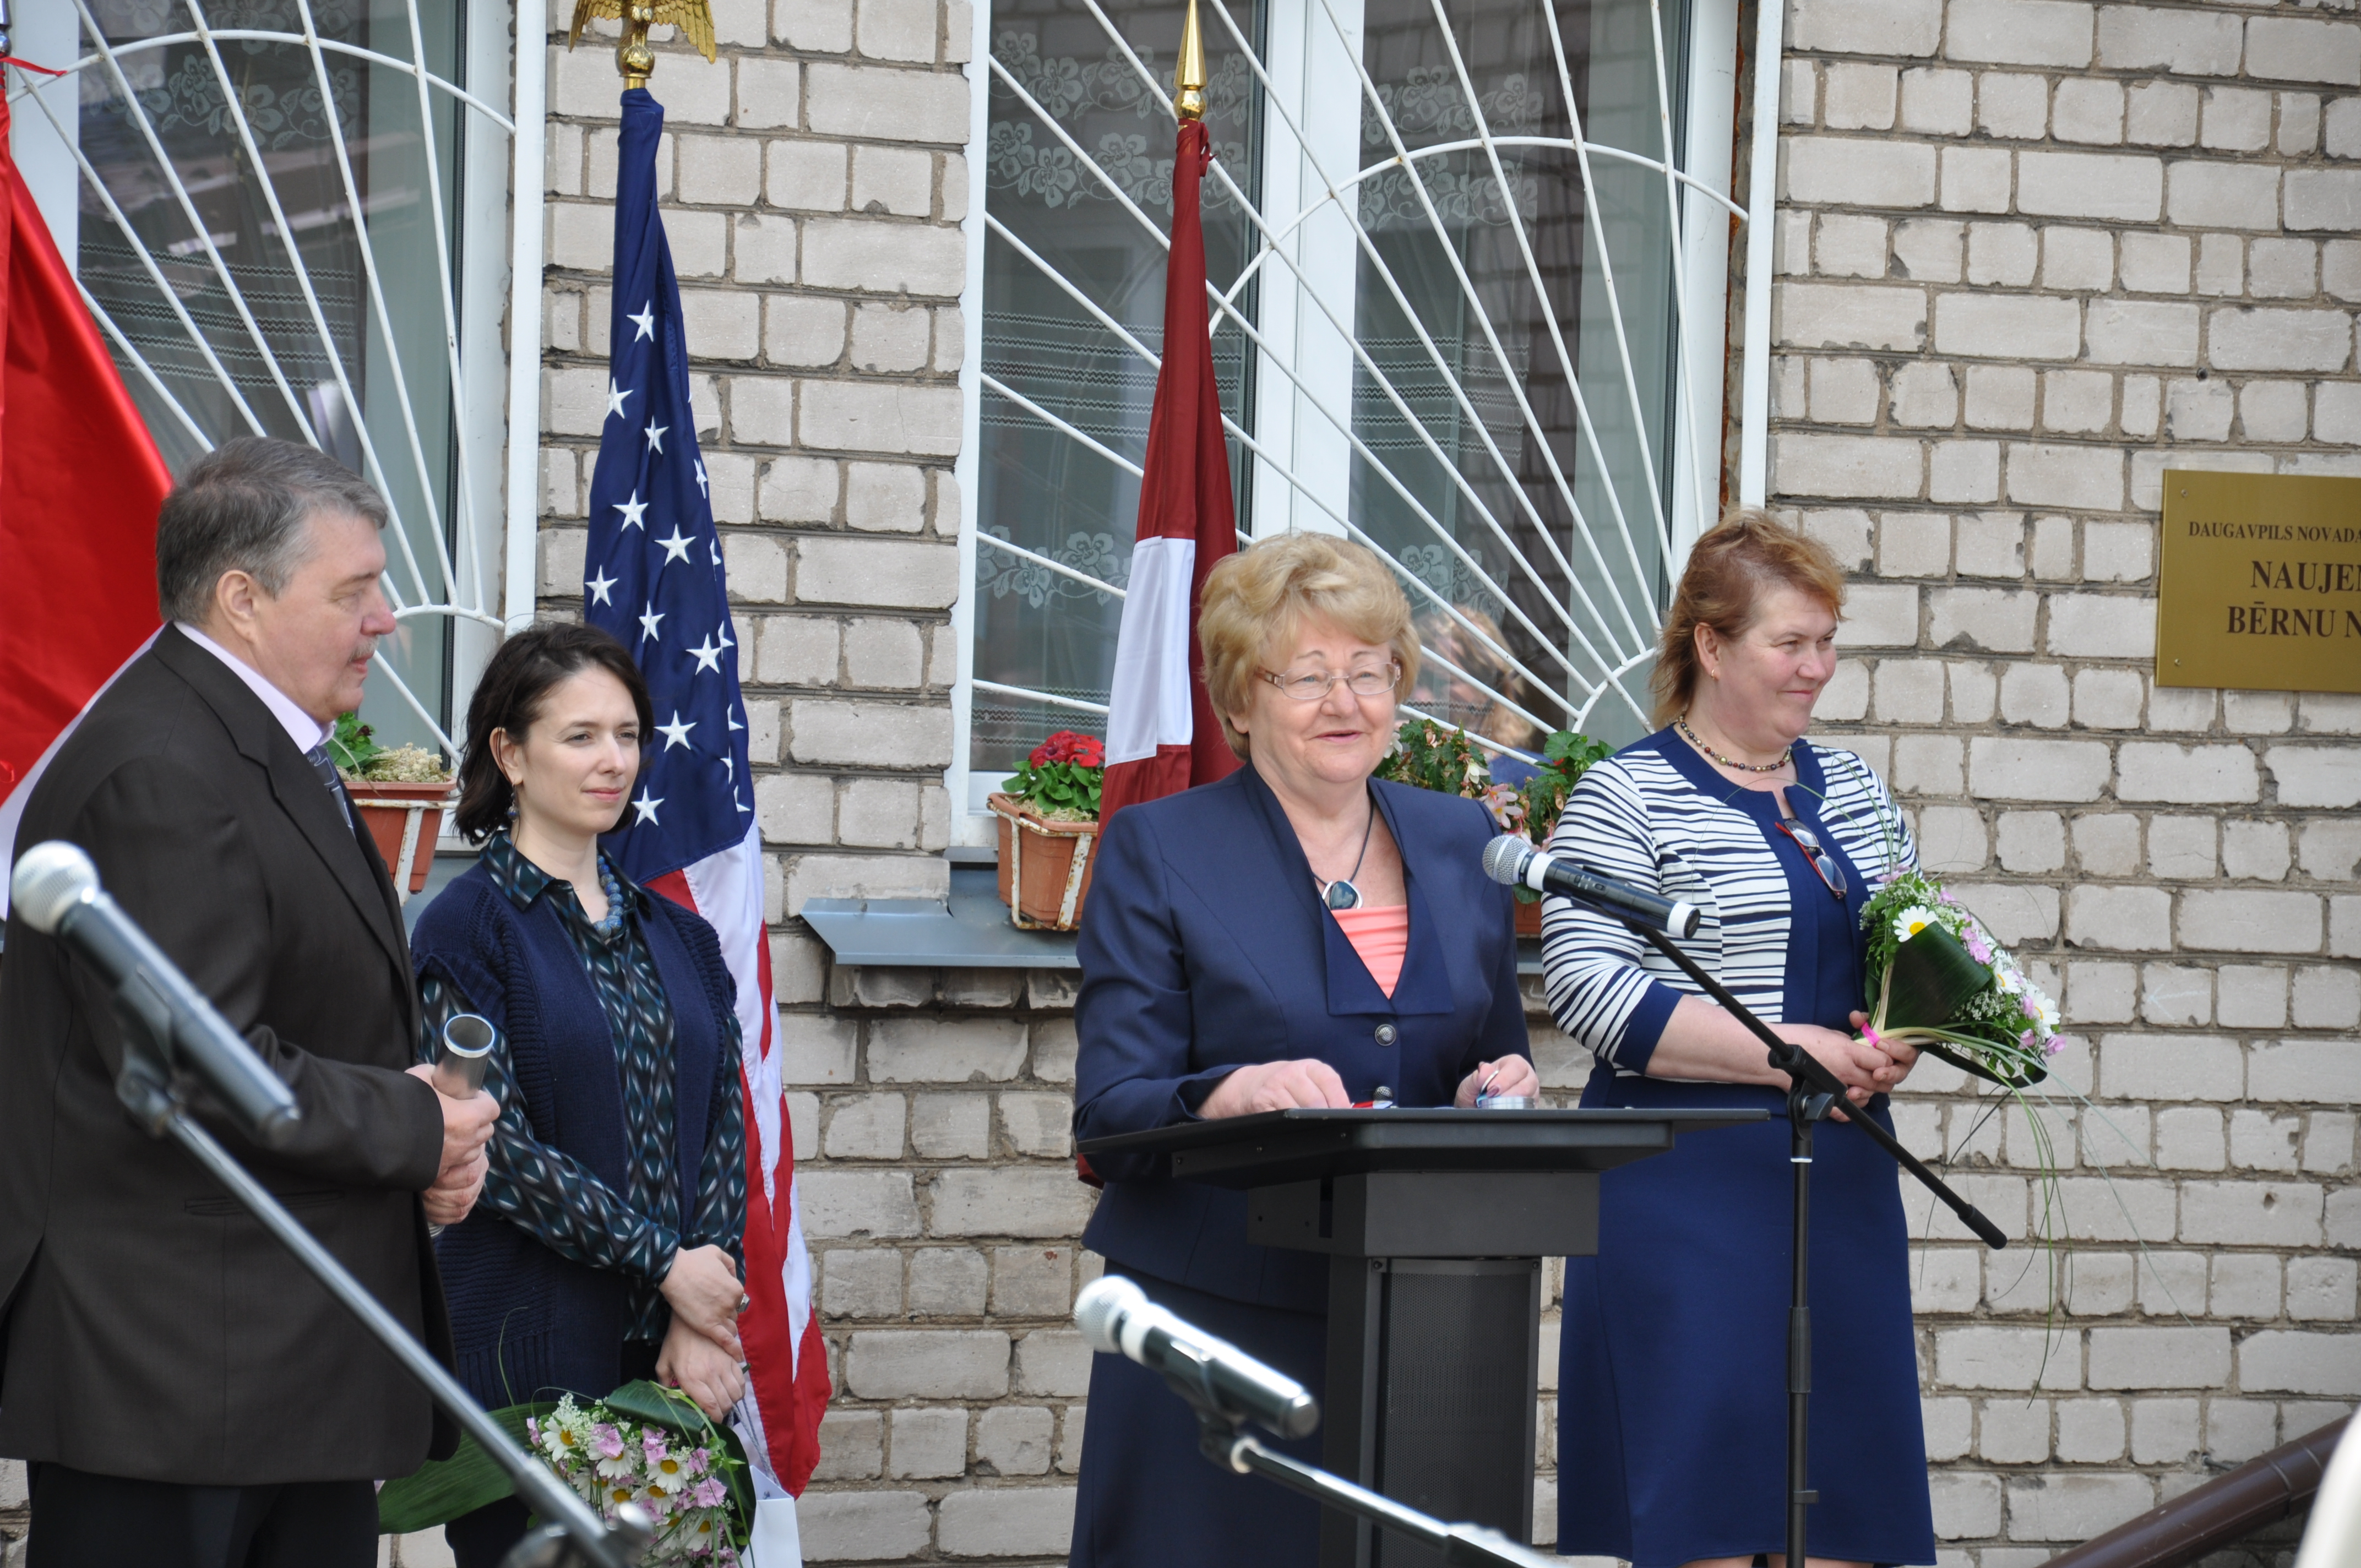 Ms. Vanda Kezika, the Executive Director of the Daugavapils Regional Council addressing the troops at the Kick-off ceremony for Humanitarian Civic Assistance (HCA) Project at Naujene Orphanage, Daugavpils region, Latvia (from left: Mr. Jurij Denisov (SIA Ditton Būve); Ms. Vanessa Acker (US Embassy); Ms. Vanda Kezika (Daugavpils Regional Council), Ms. Lilita Gasjaņeca (Naujene Orphanage). Photo by Office of Defense Cooperation Latvia.